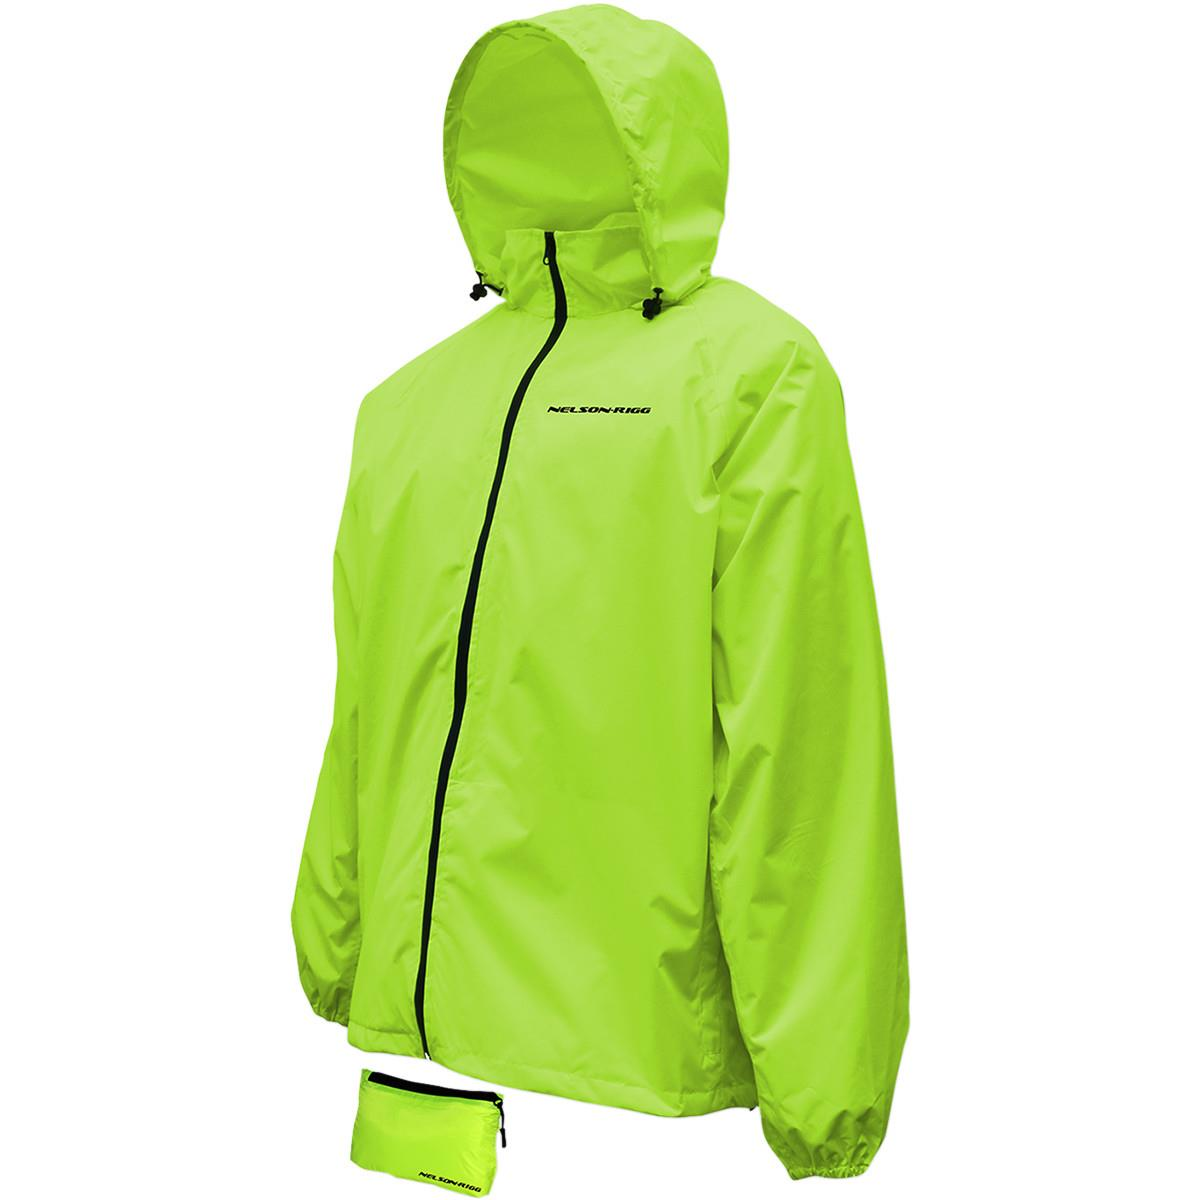 Nelson-Rigg Compact Pack Jacket